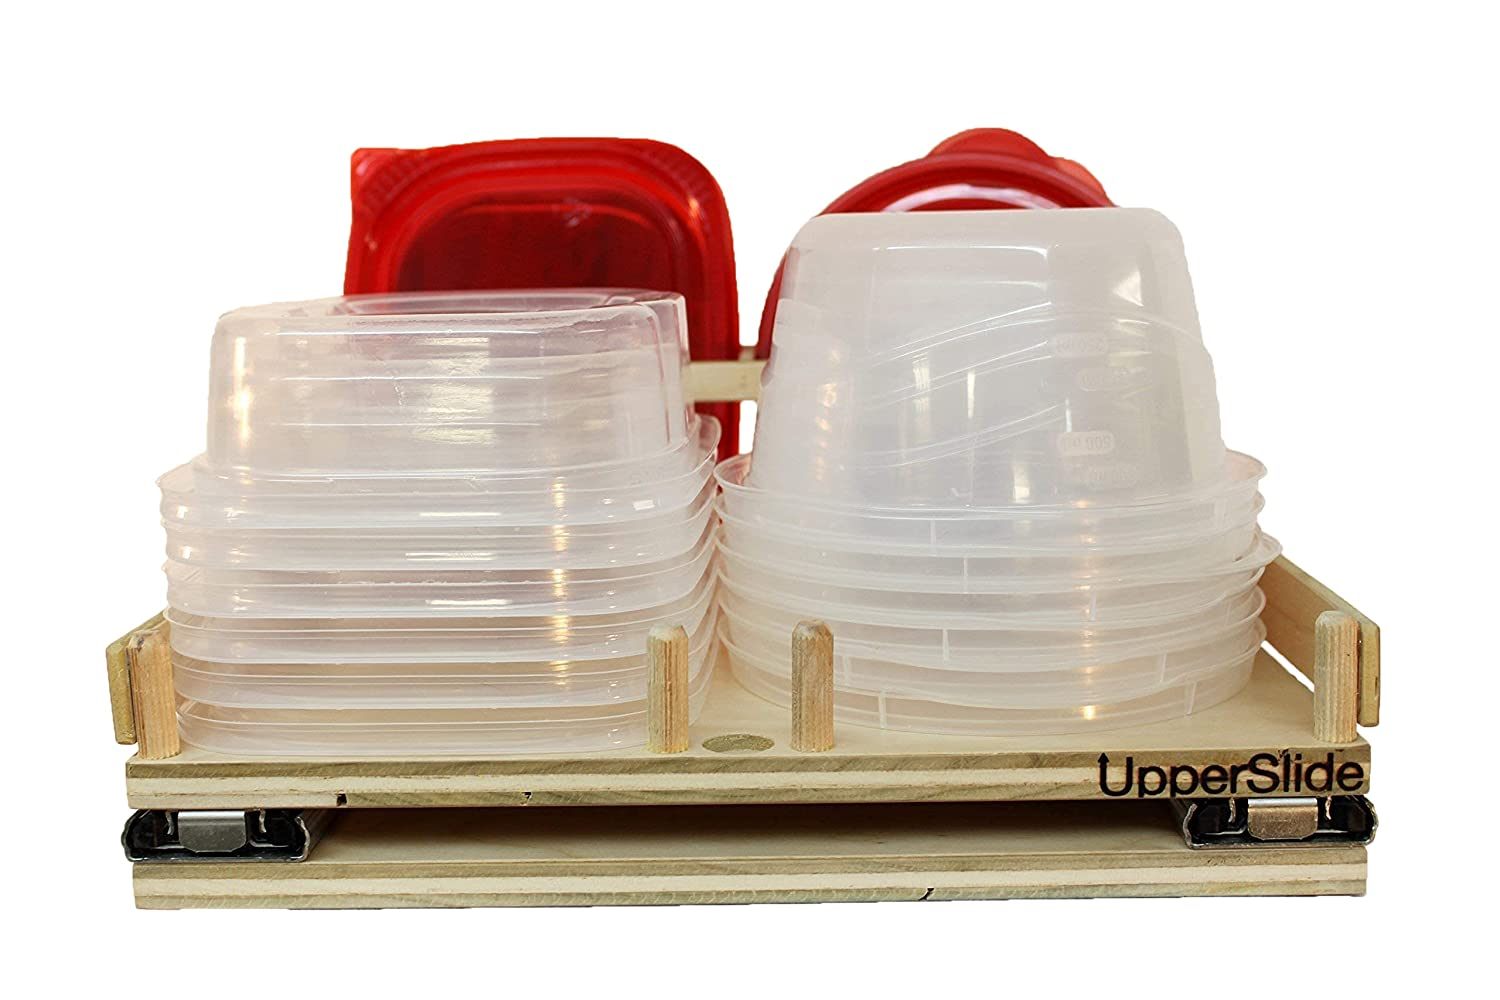 Pull Out Sliding Shelf Medium Caddy Upper Container High material for Los Angeles Mall Cabinet